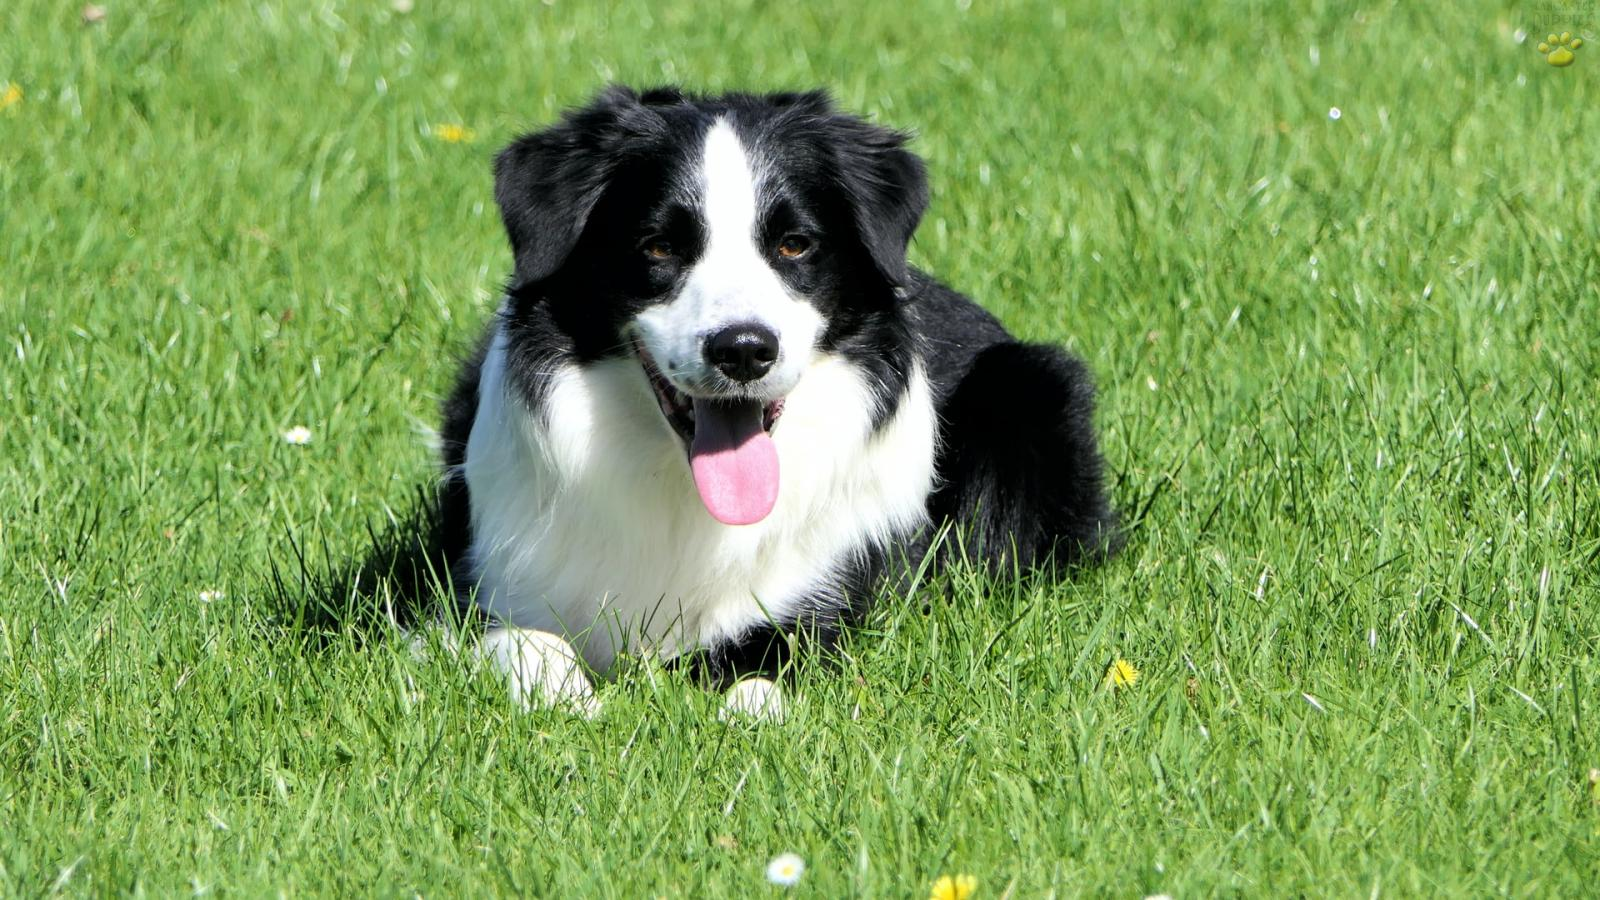 A black and white Border Collie in the grass